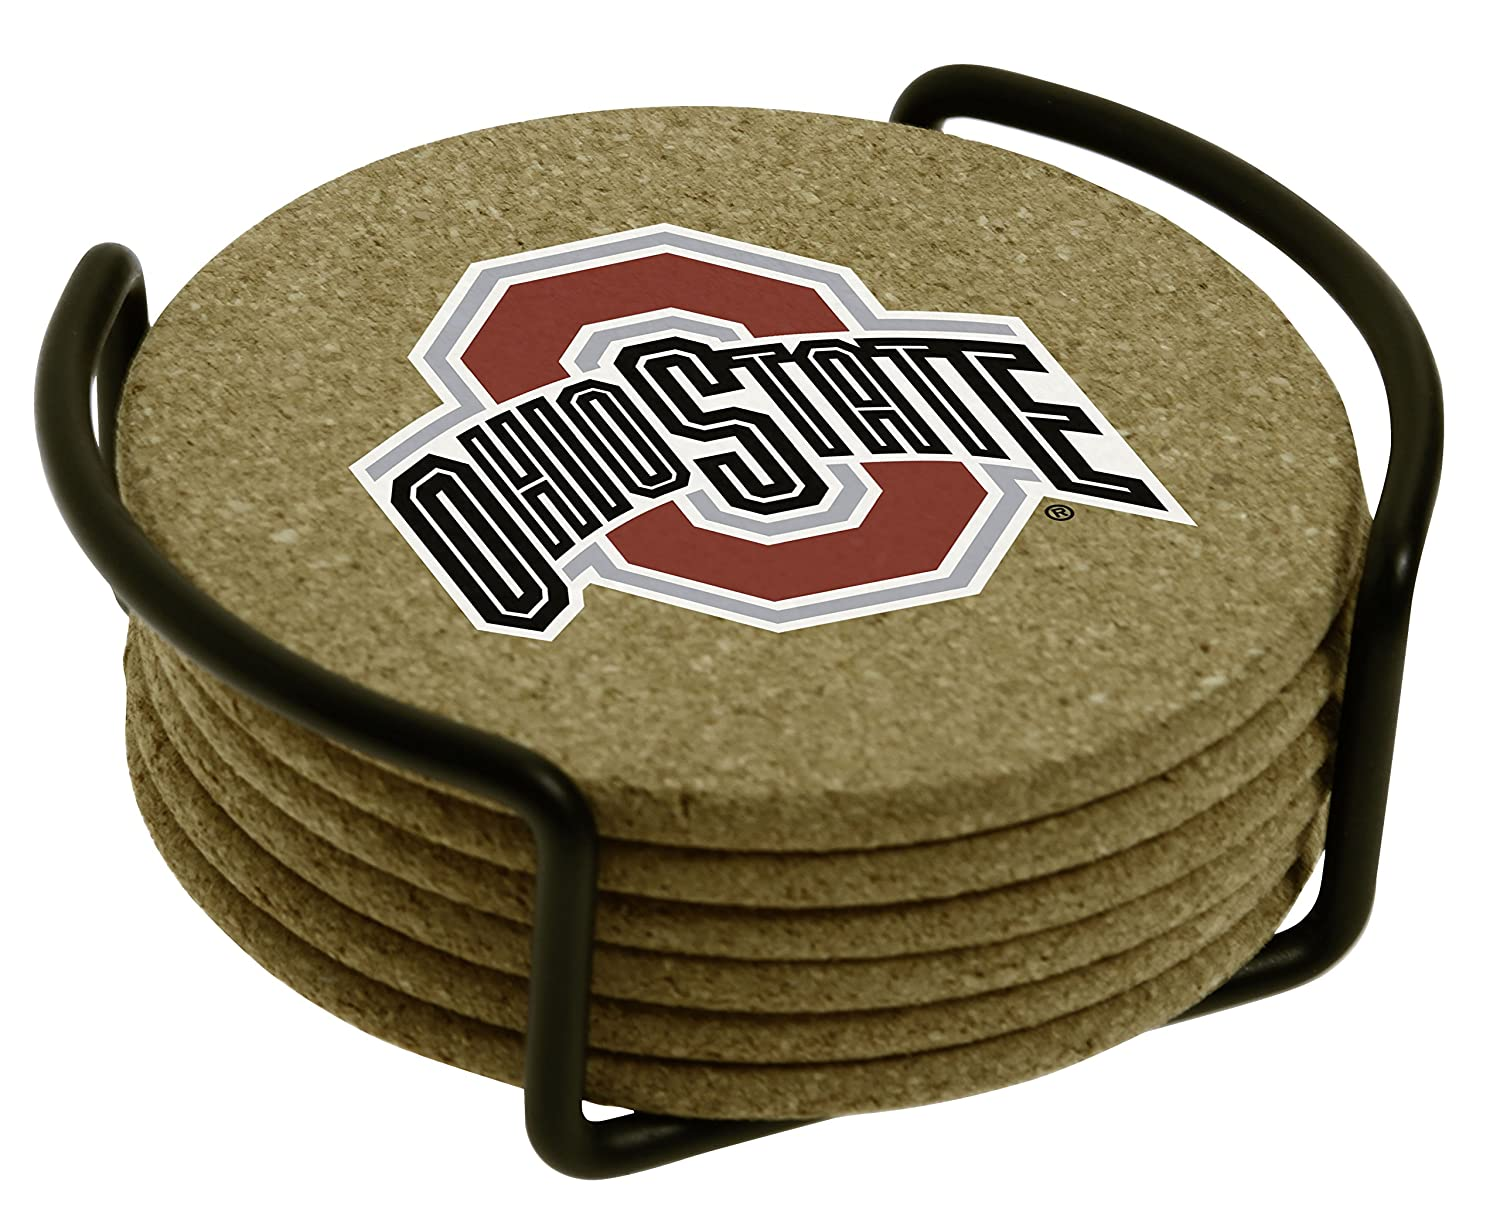 Thirstystone Ohio State University with Holder Included Cork Gift Set